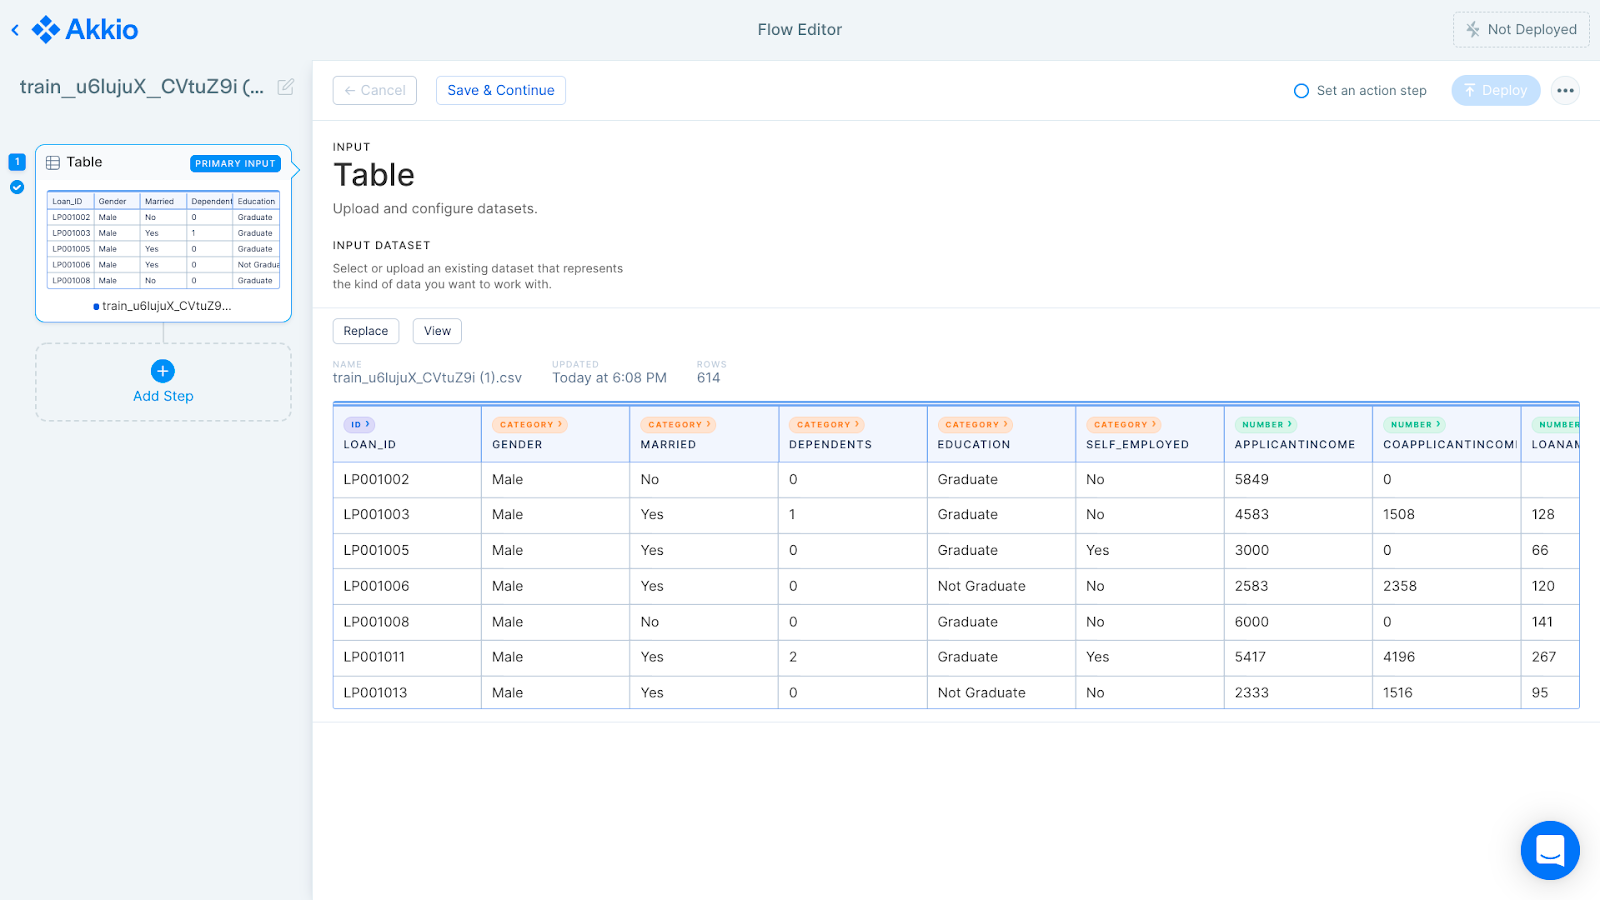 """A screenshot of Akkio's """"Flow Editor�, where the user has added a tabular dataset of credit clients."""